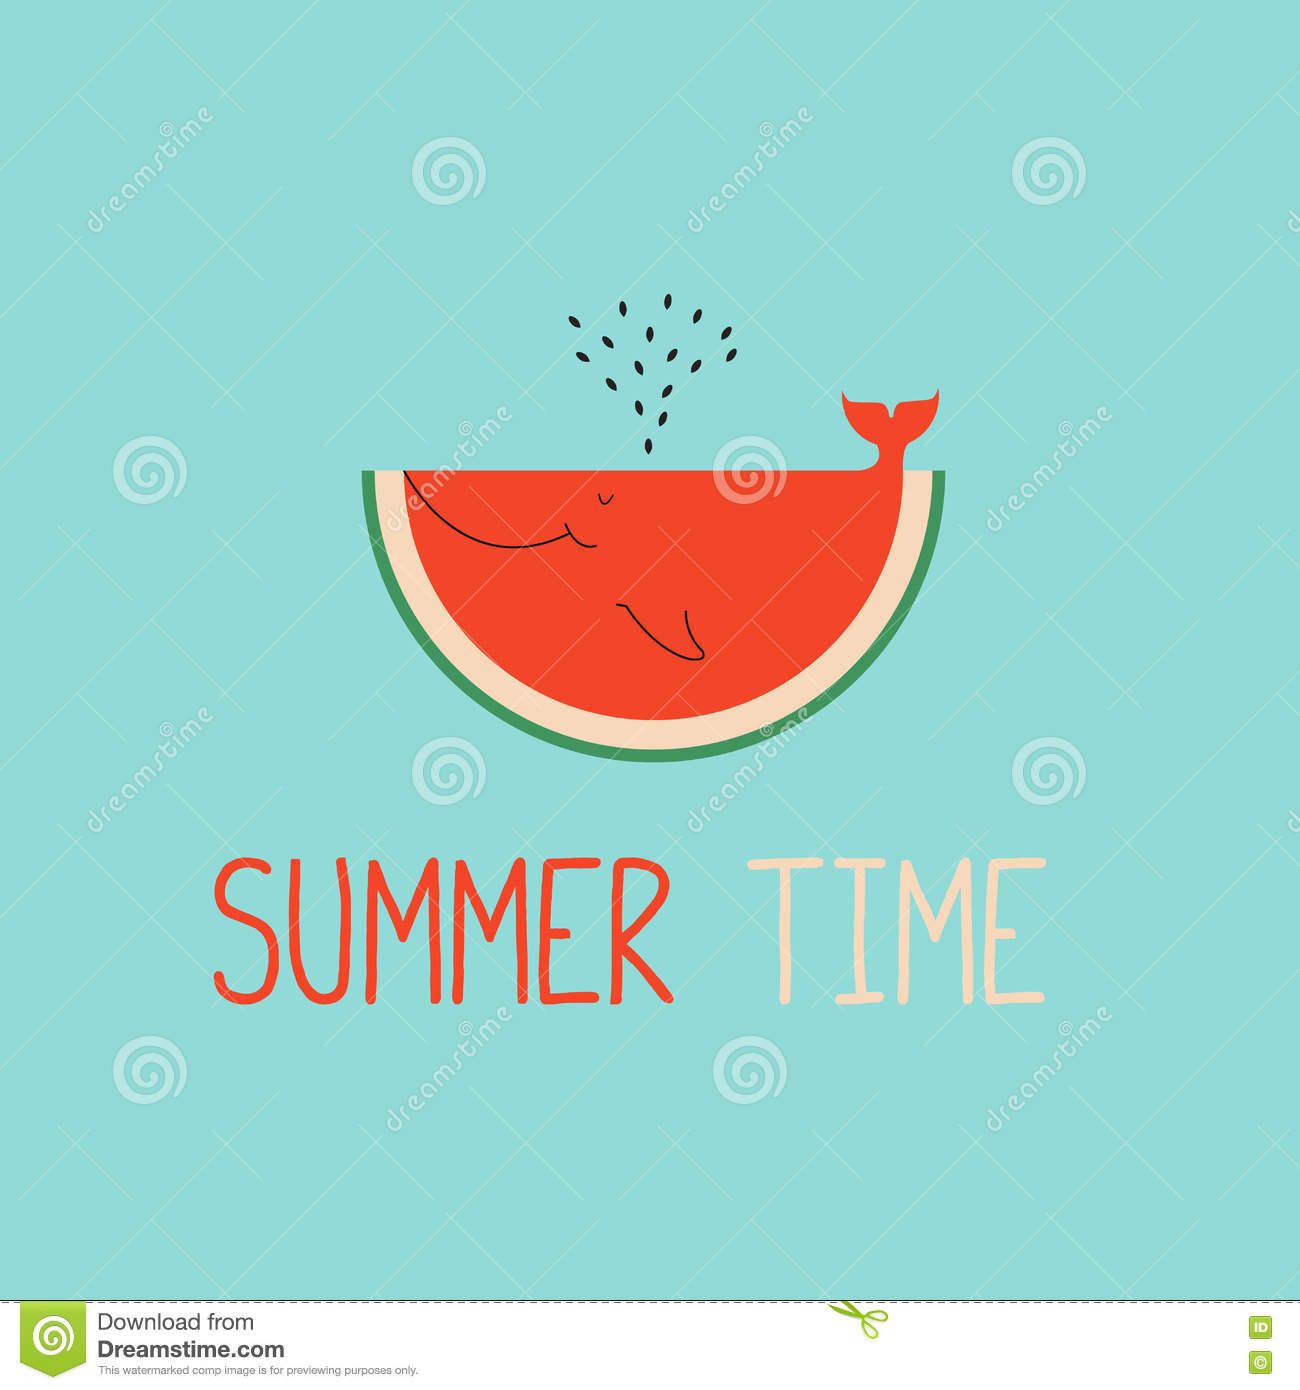 summer time greeting cards template with watermelon slice stock